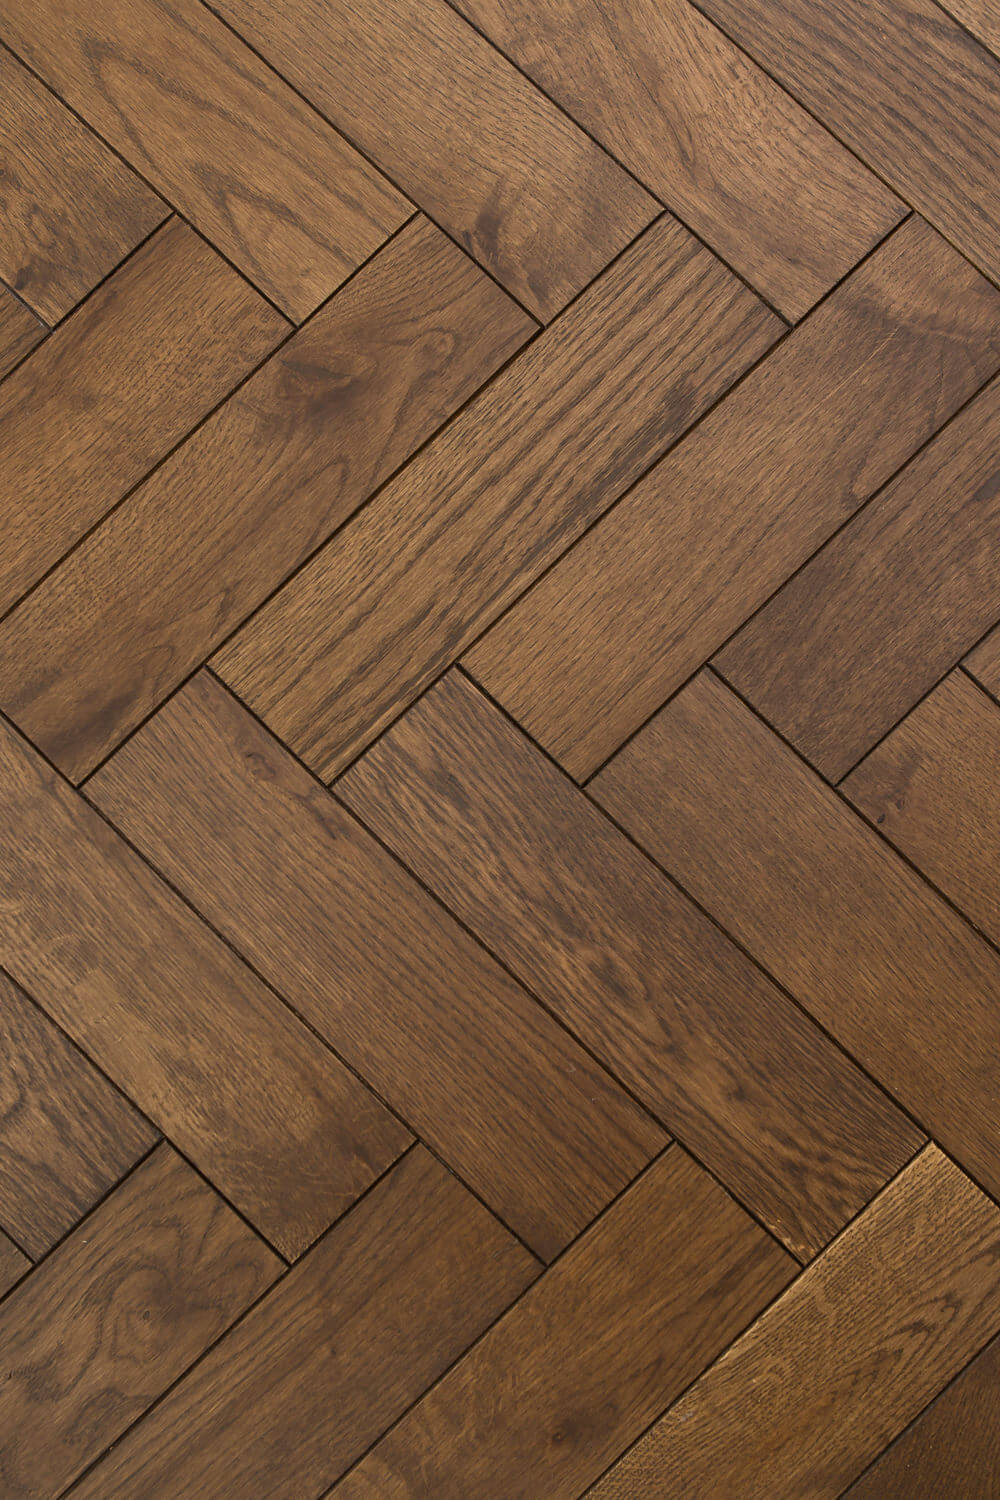 3 Oak Floor Product Nutmeg Matt Parquet